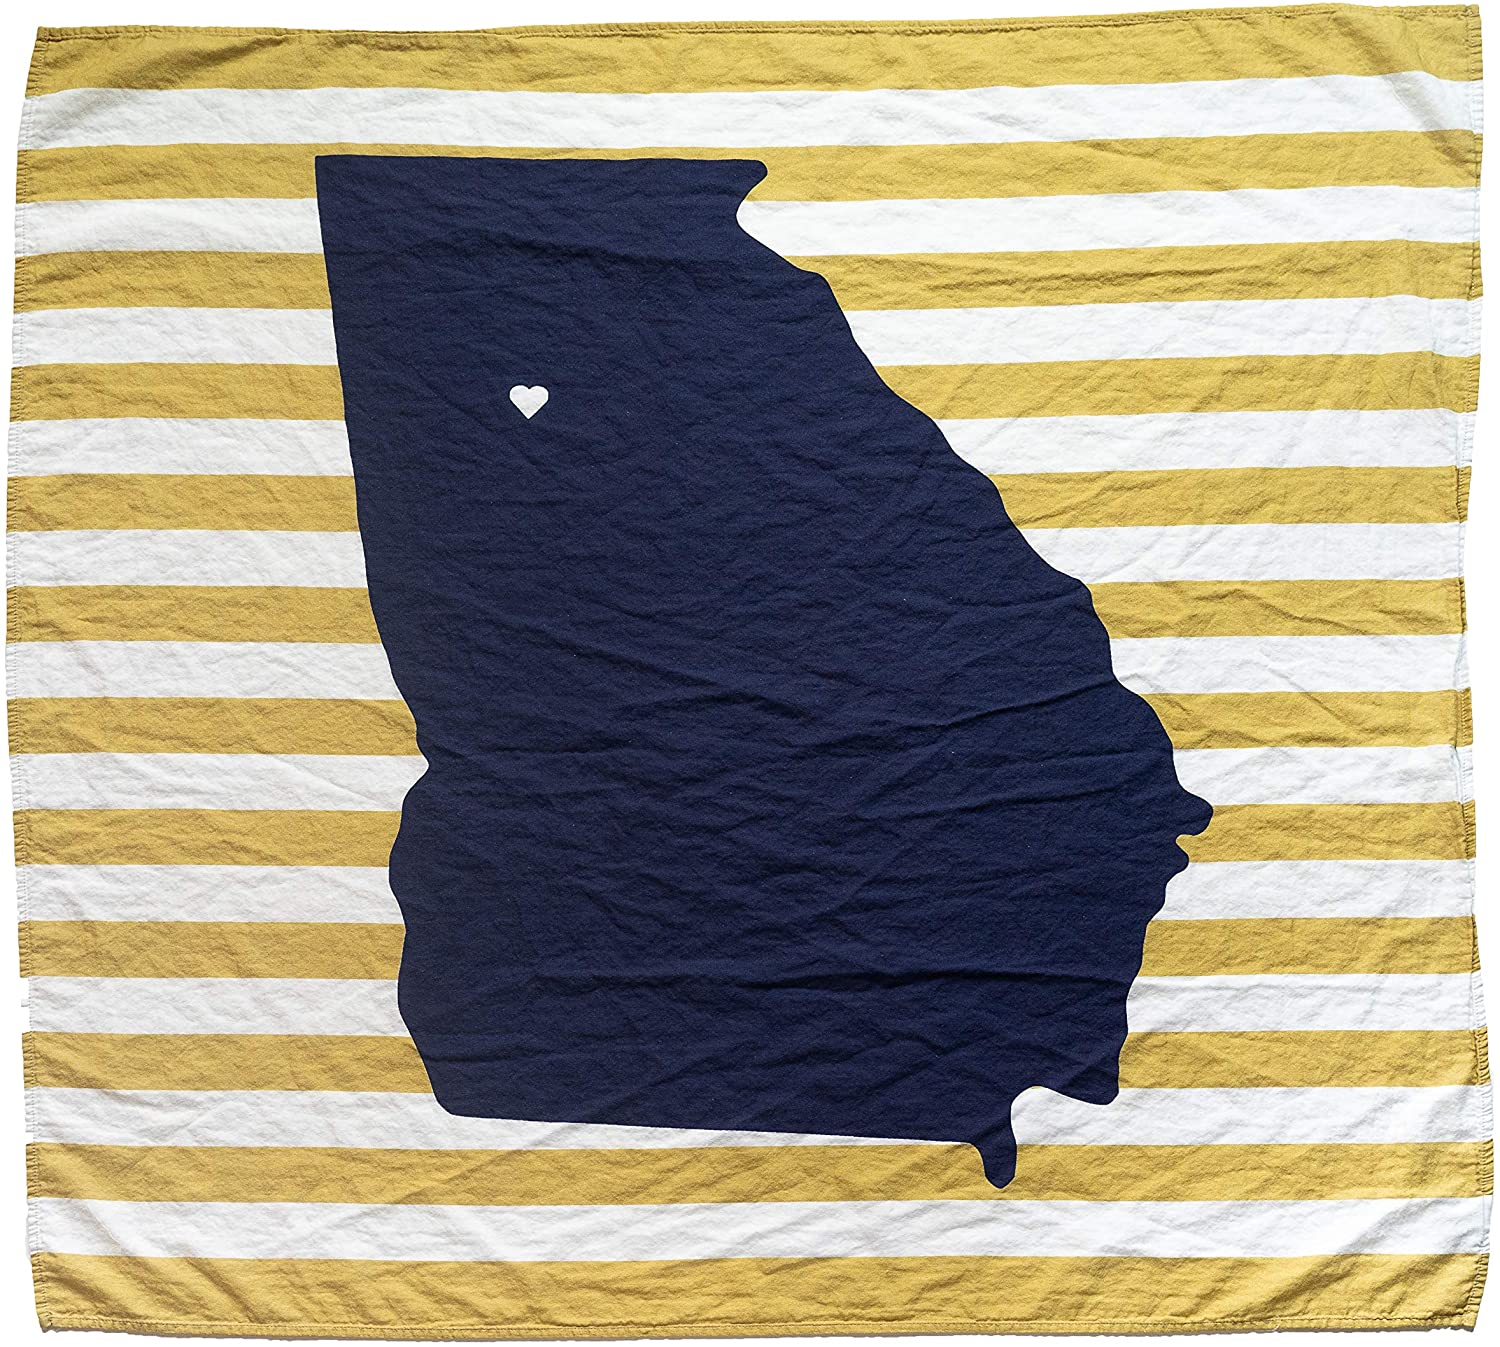 "Twig & Bale Organic Cotton Muslin Swaddle Blanket - Atlanta, Fans of Ga Tech Baby Blanket - 47"" x 43"" - Fans of Georgia Tech Yellow Jackets Baby Gift - Soft Muslin Baby Blanket for Boys and Girls"